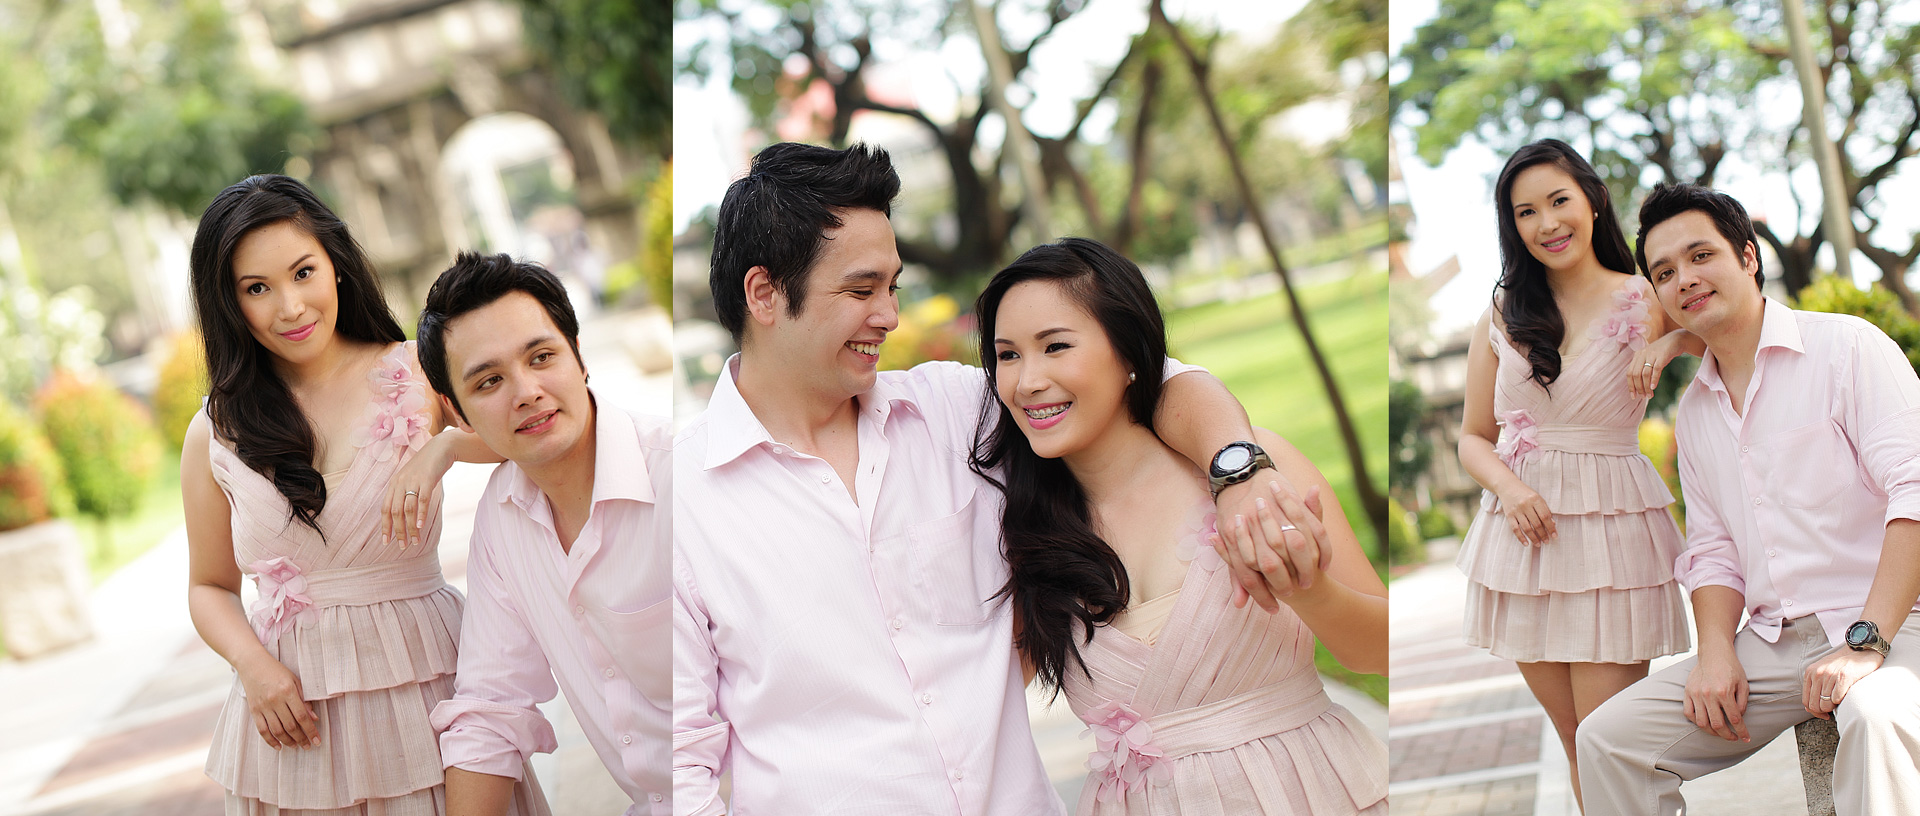 Vibrant Images by Jayson and Joanne Photography